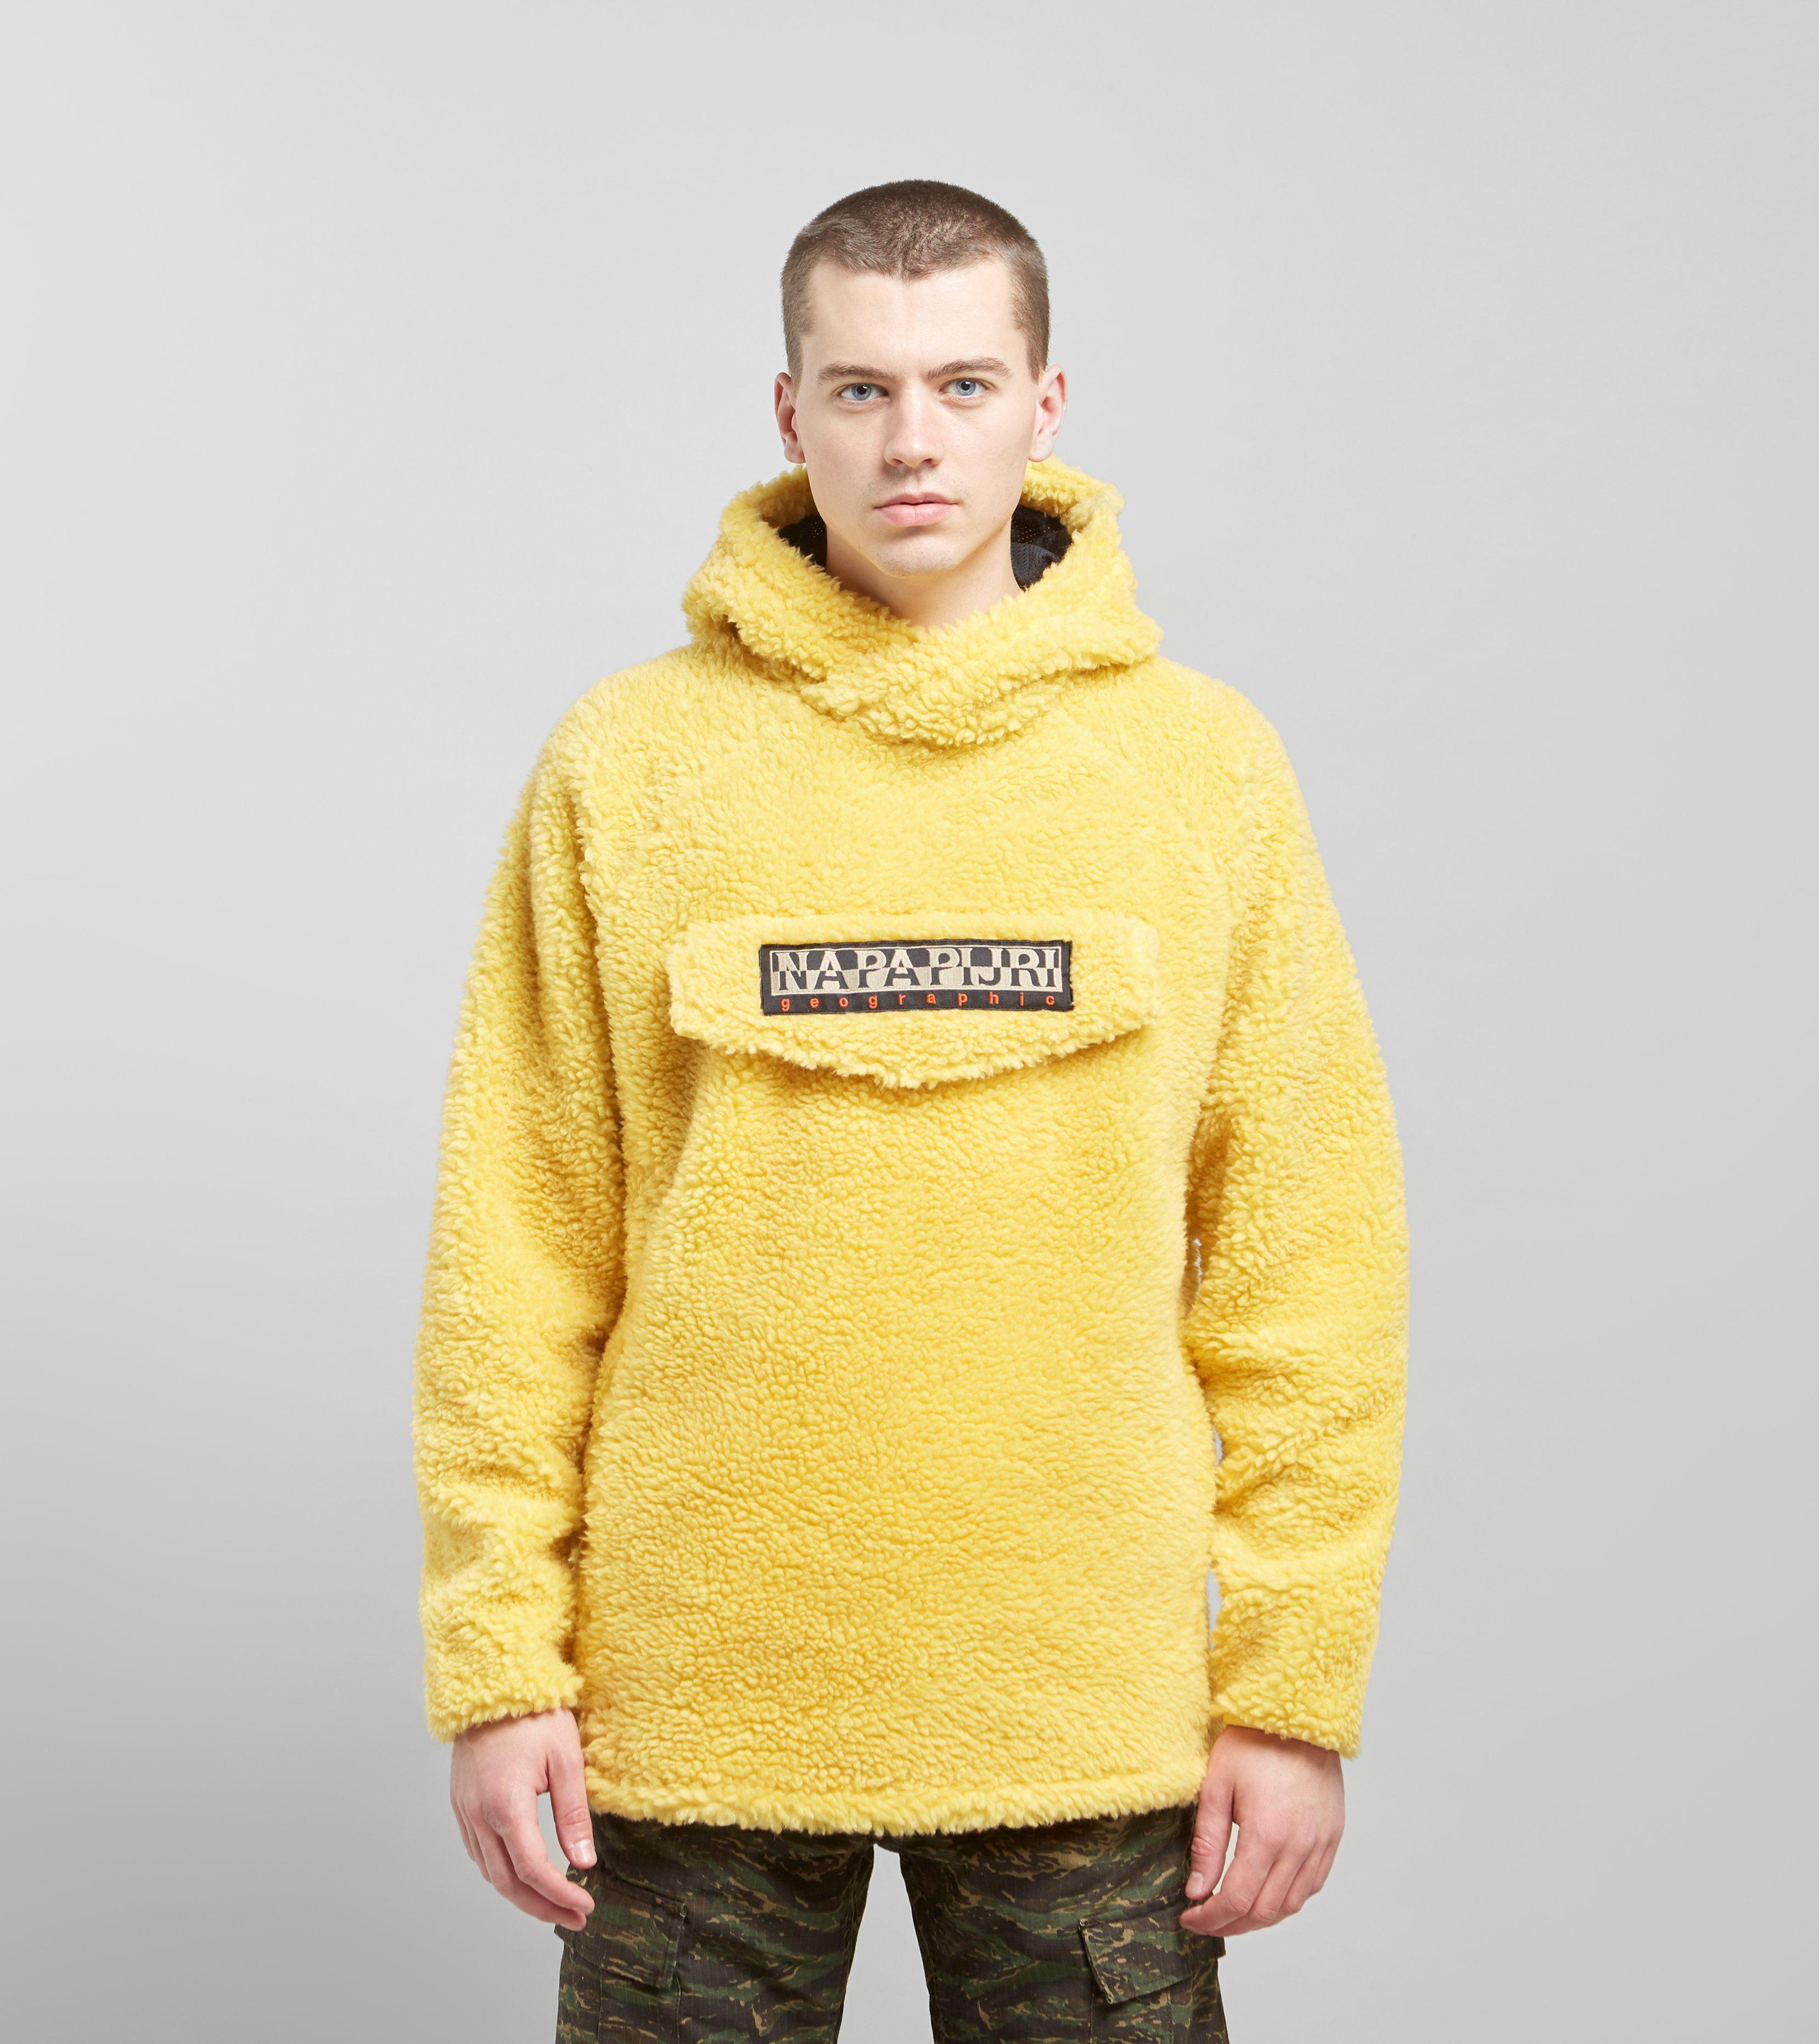 Napapijri Telve Fleece Hoody in Yellow for Men - Lyst 32dd5ffd905